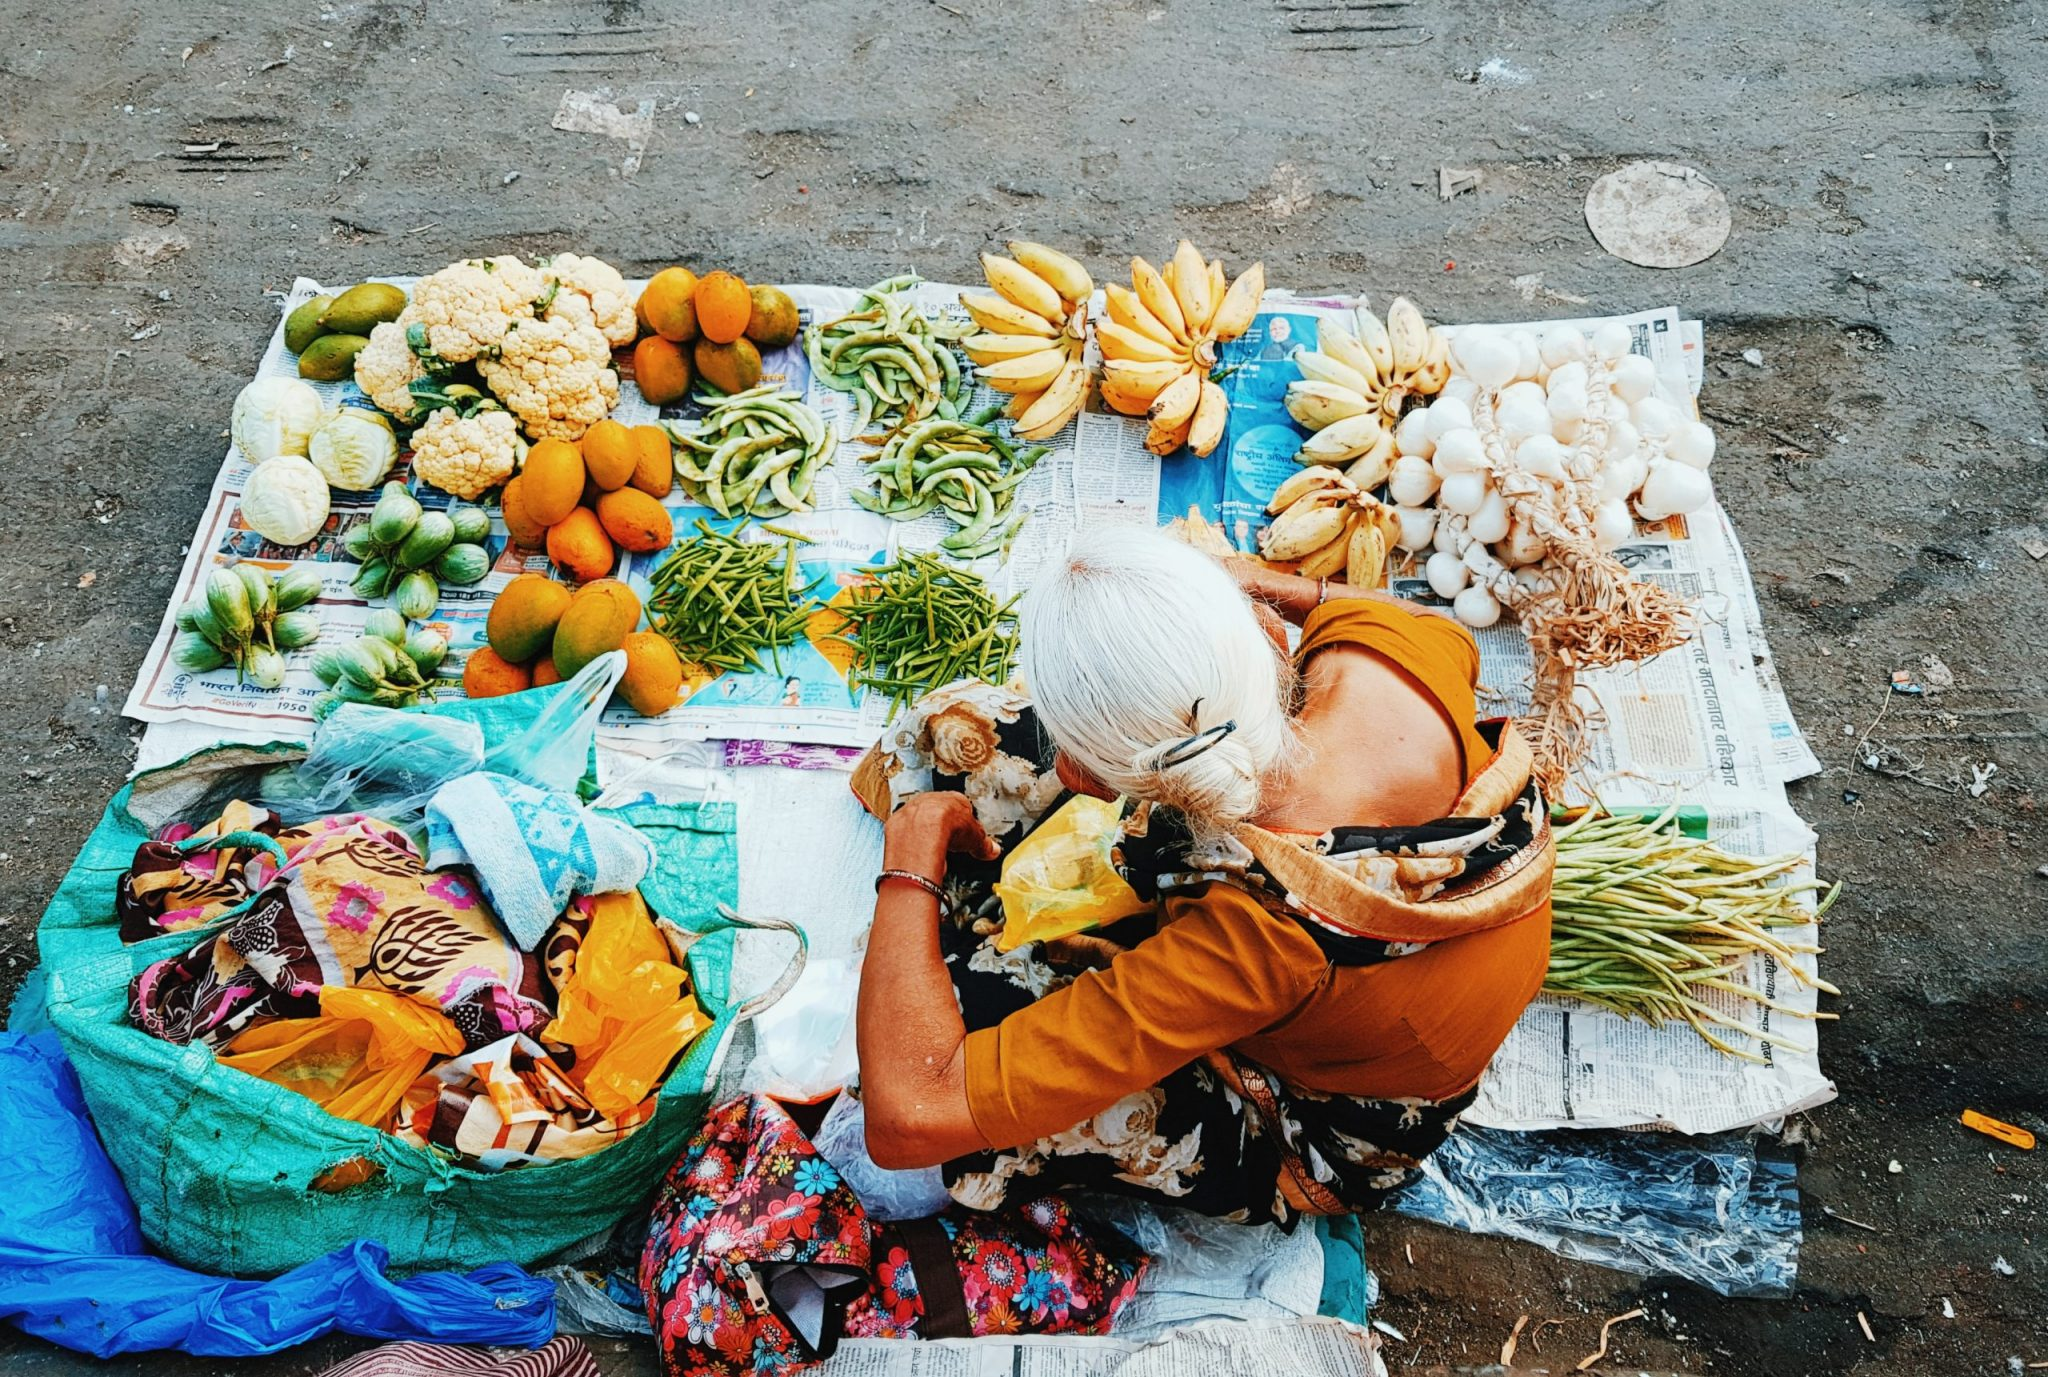 Women sitting on ground surrounded by fruits and vegetables